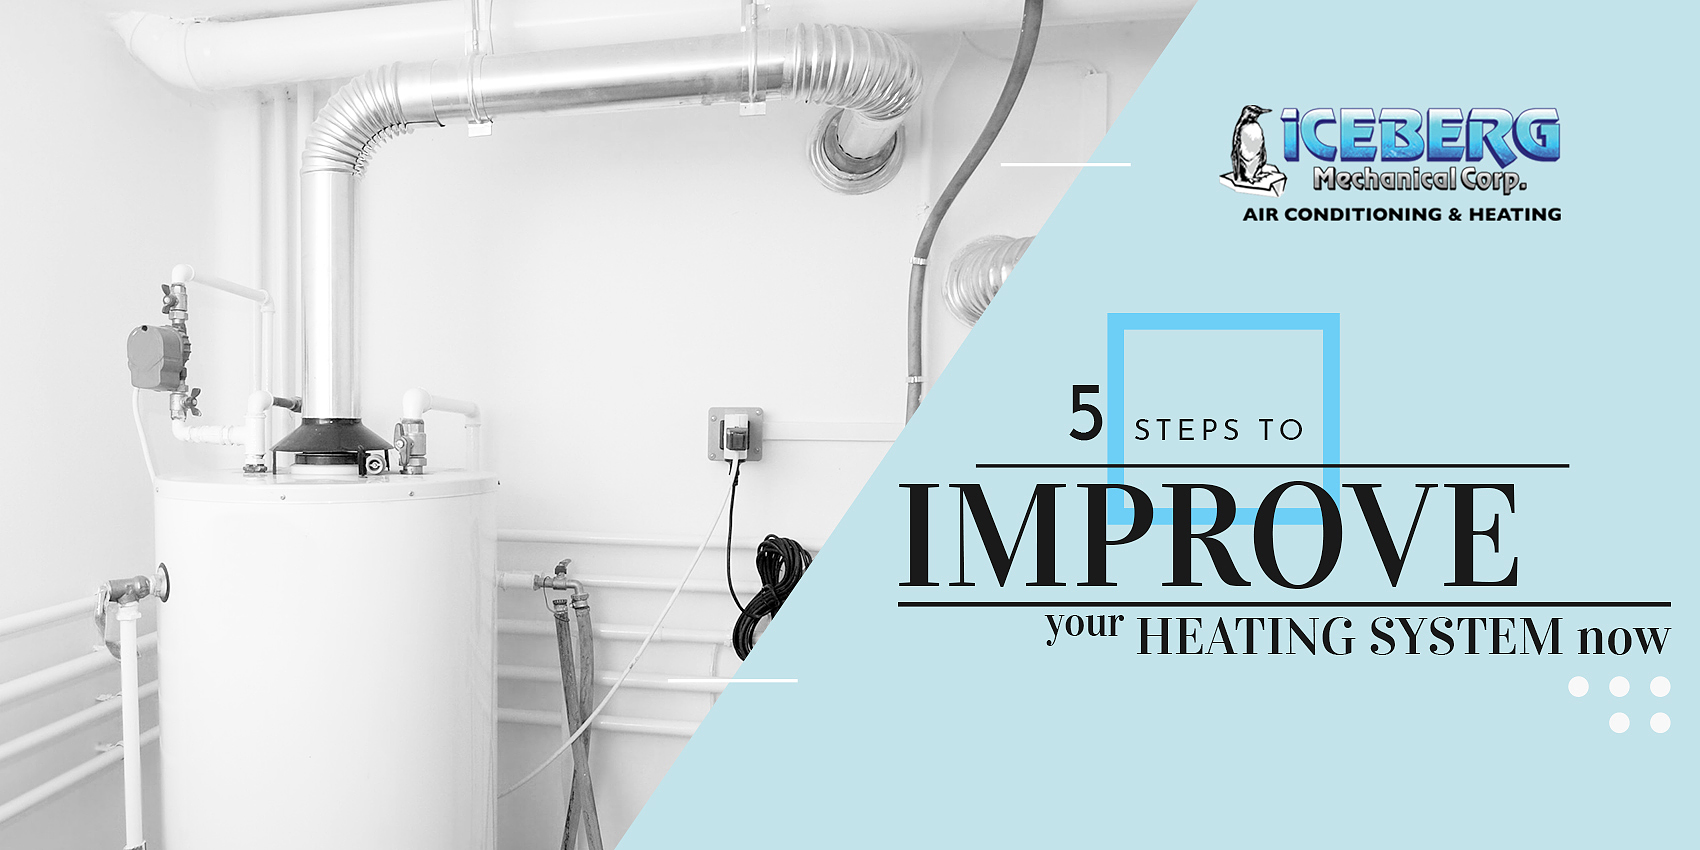 5 Steps To Improve Your Heating System Now